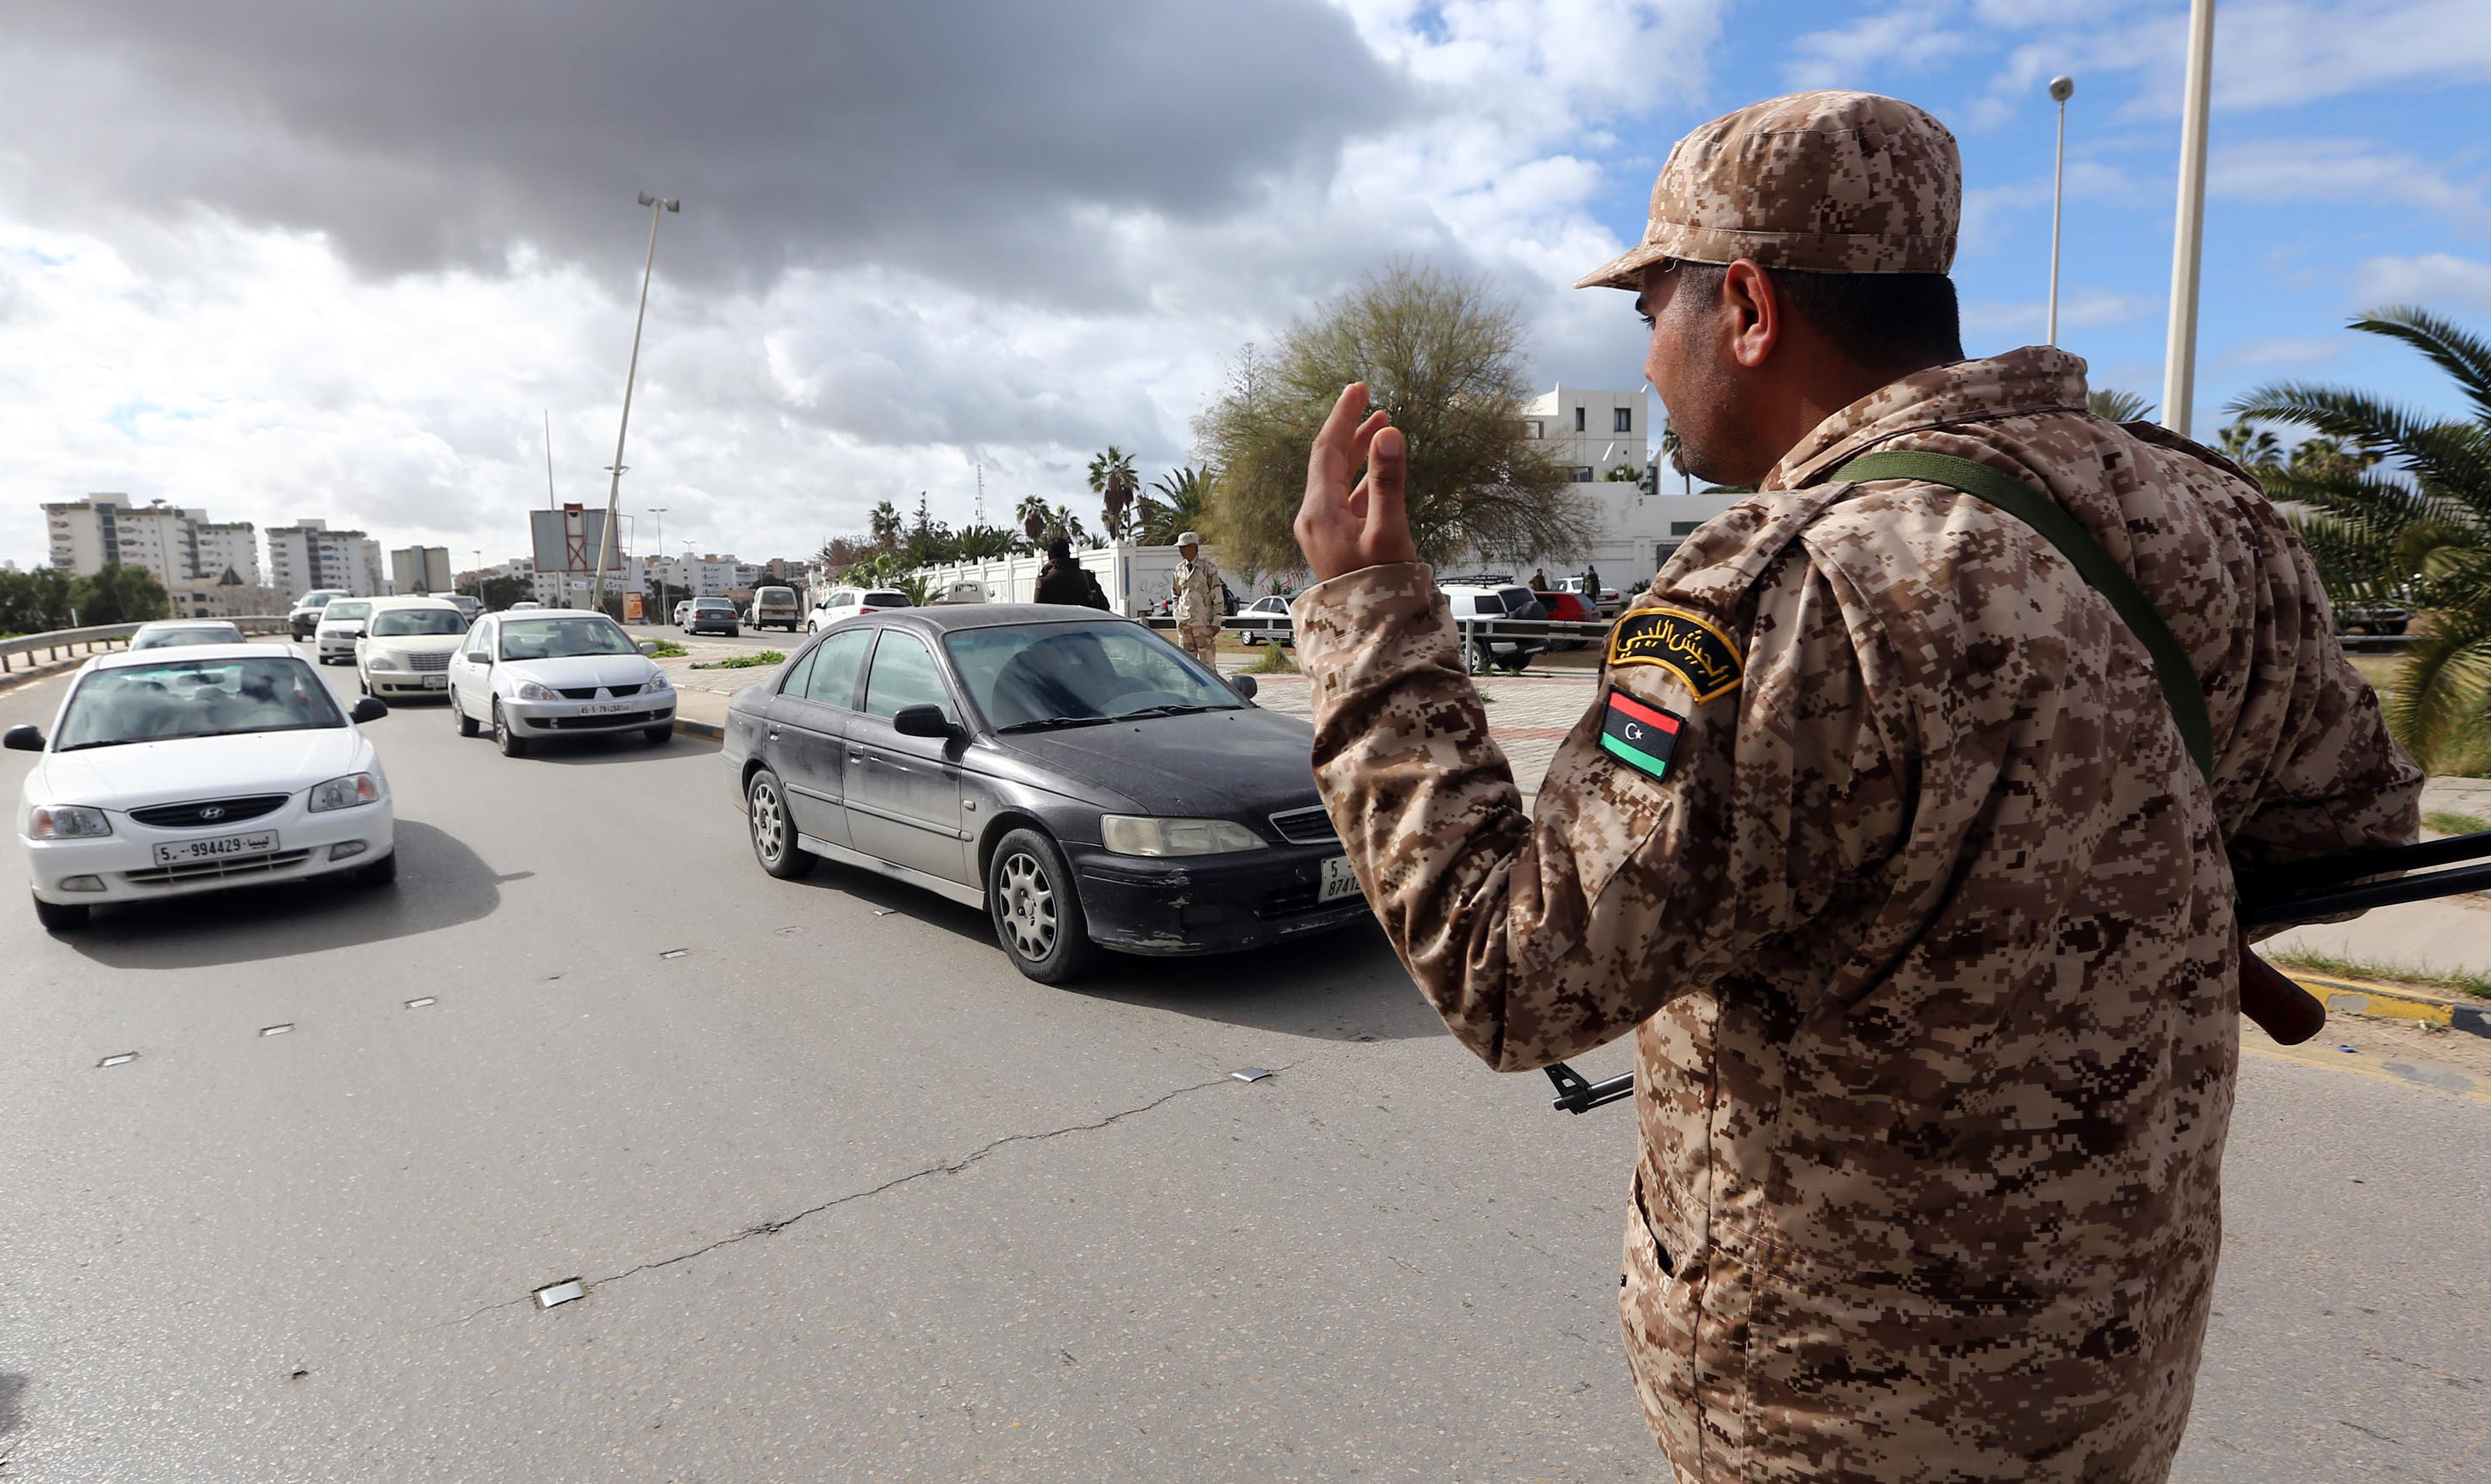 A soldier from the Libyan army mans a checkpoint in the capital Tripoli on January 26, 2014. Egypt's ambassador and his staff have left Libya for security reasons after the kidnapping of five of their colleagues, the foreign ministry said. The evacuation had been decided on security grounds, he said, as Libyan authorities worked to secure the release of the abducted diplomats.  (AFP PHOTO/MAHMUD TURKIA)